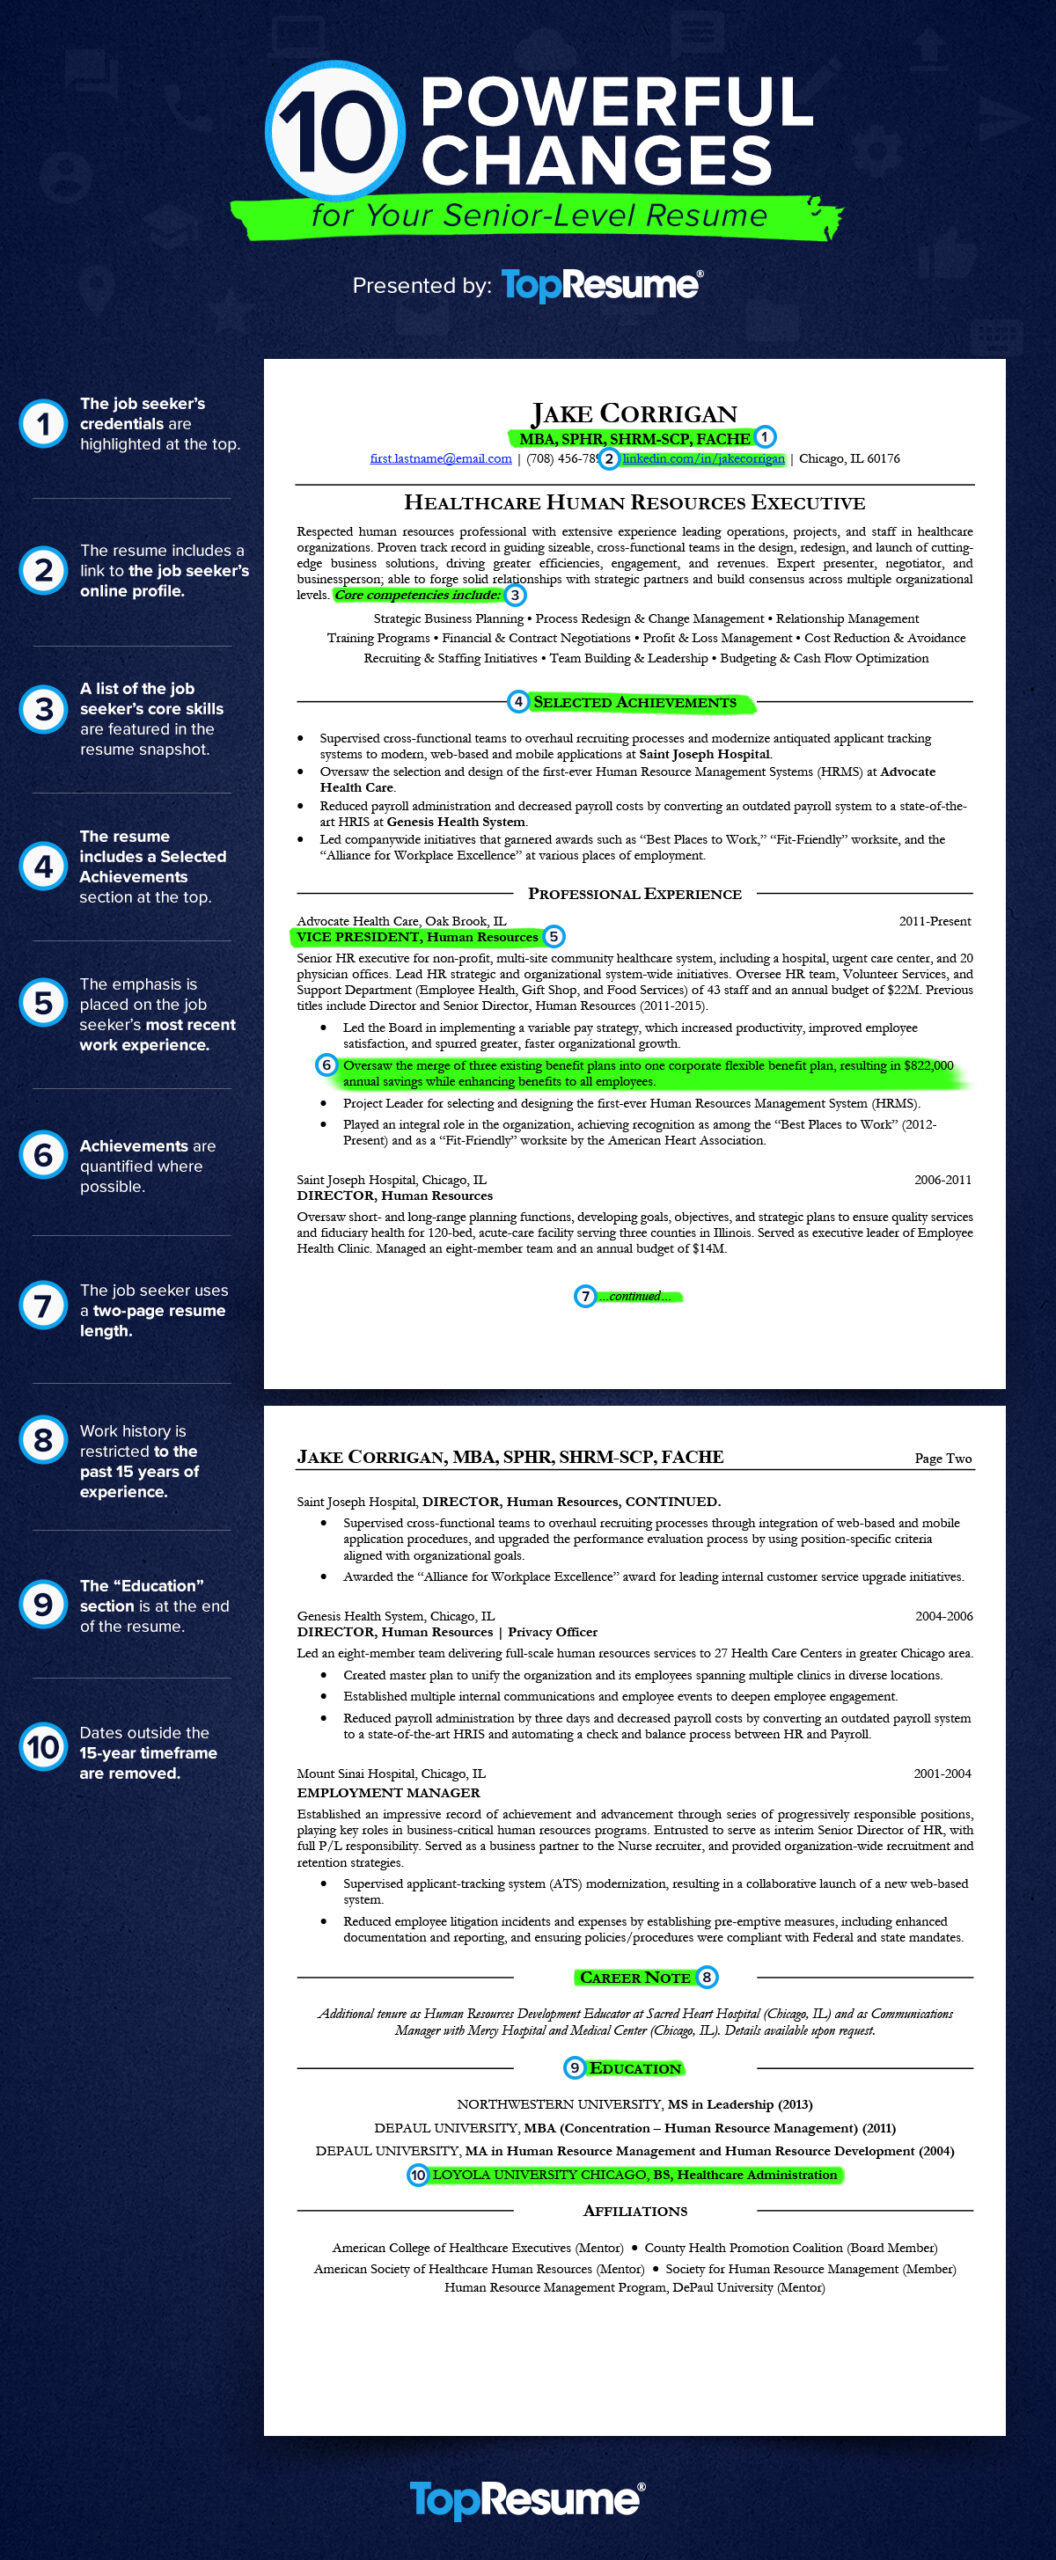 powerful changes for your executive level resume topresume professional accomplishments Resume Professional Accomplishments Resume Sample